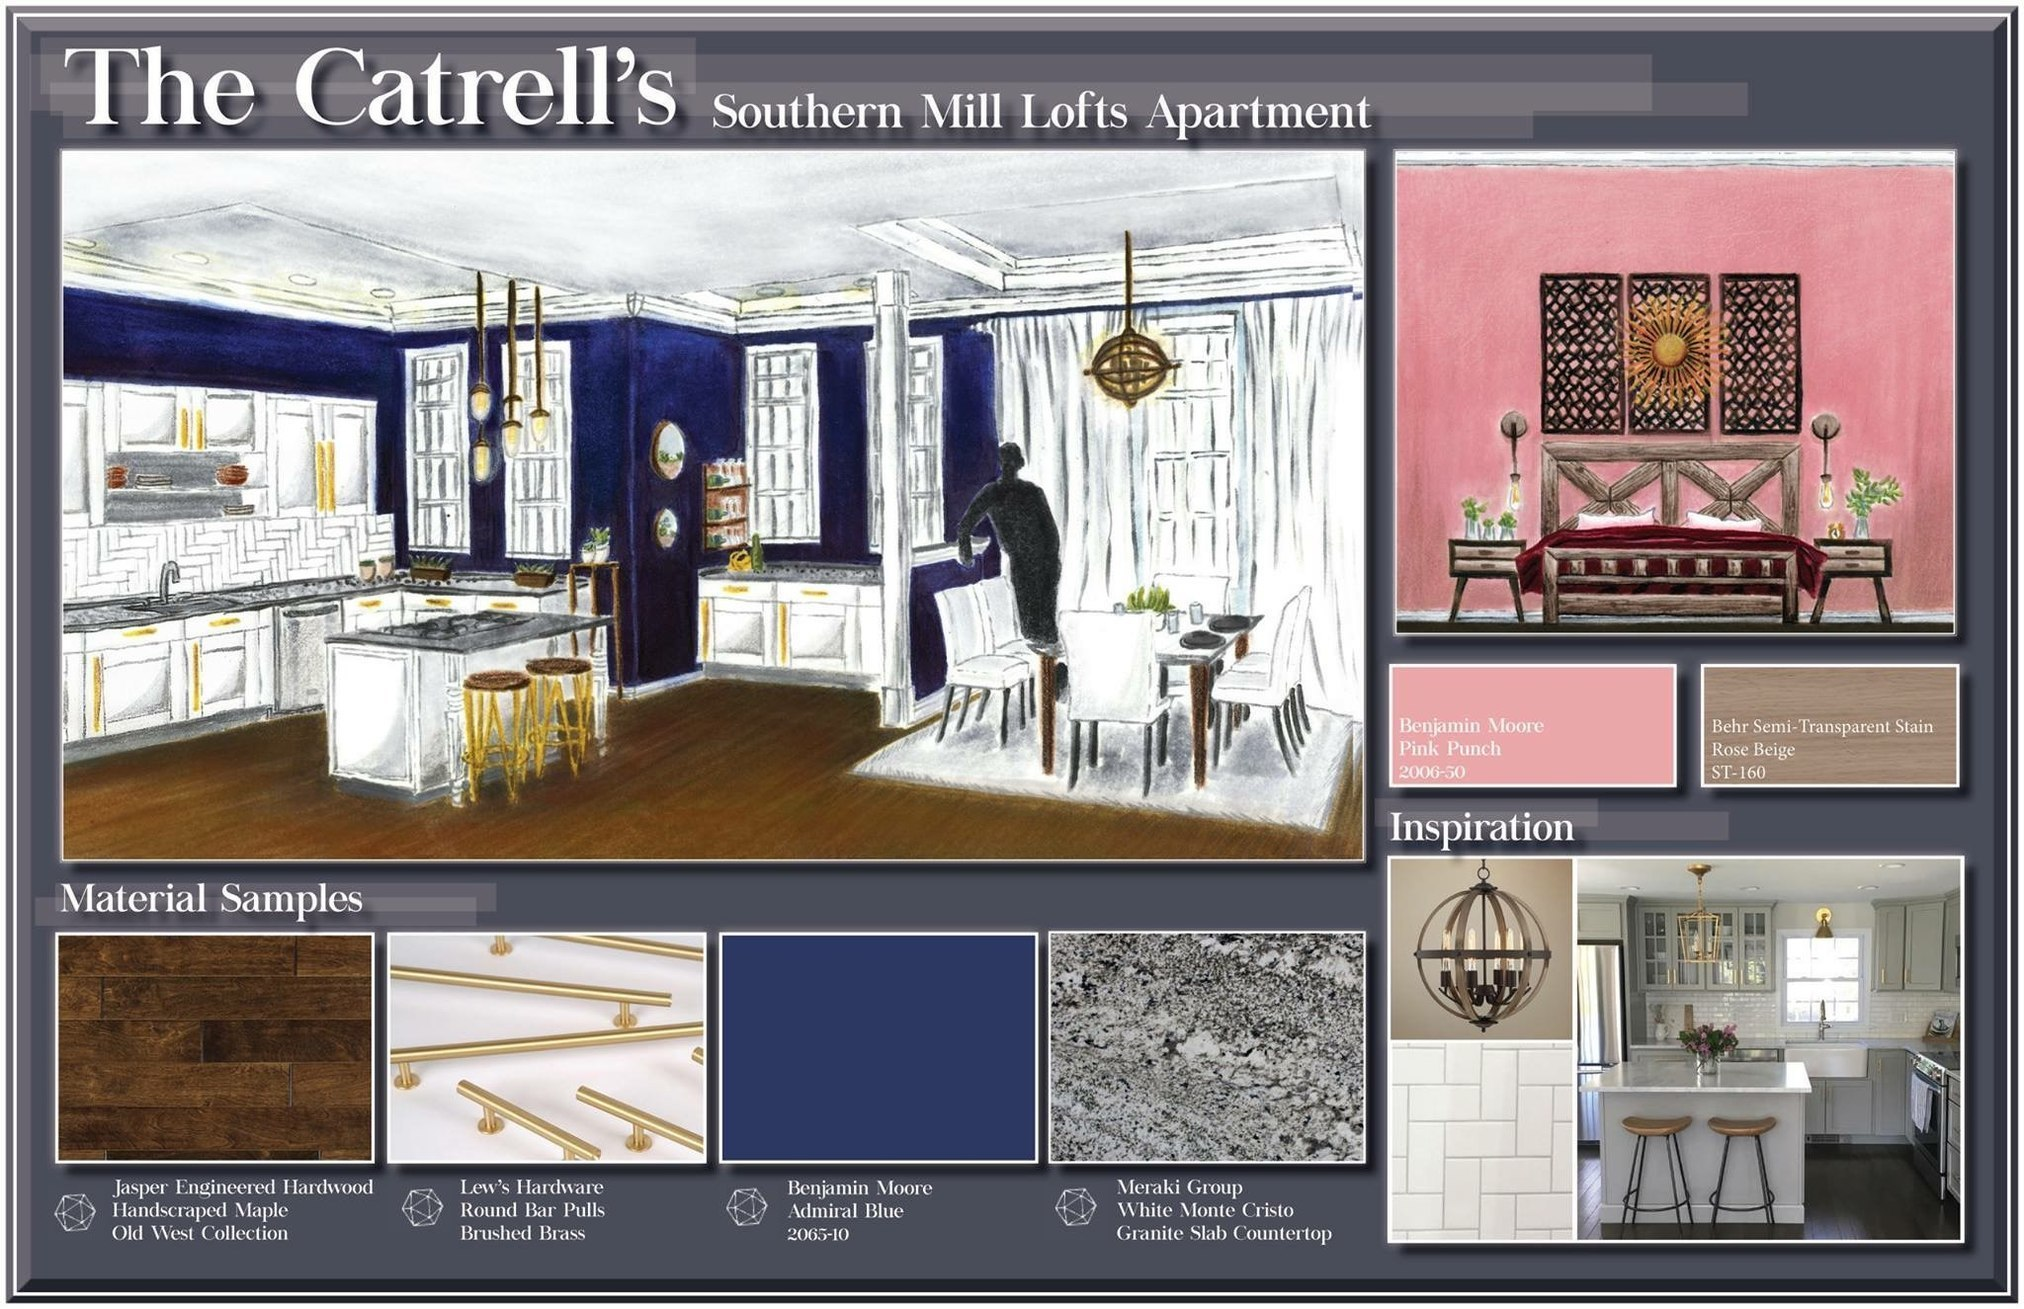 The Catrell's Southern Mill Lofts Apartment